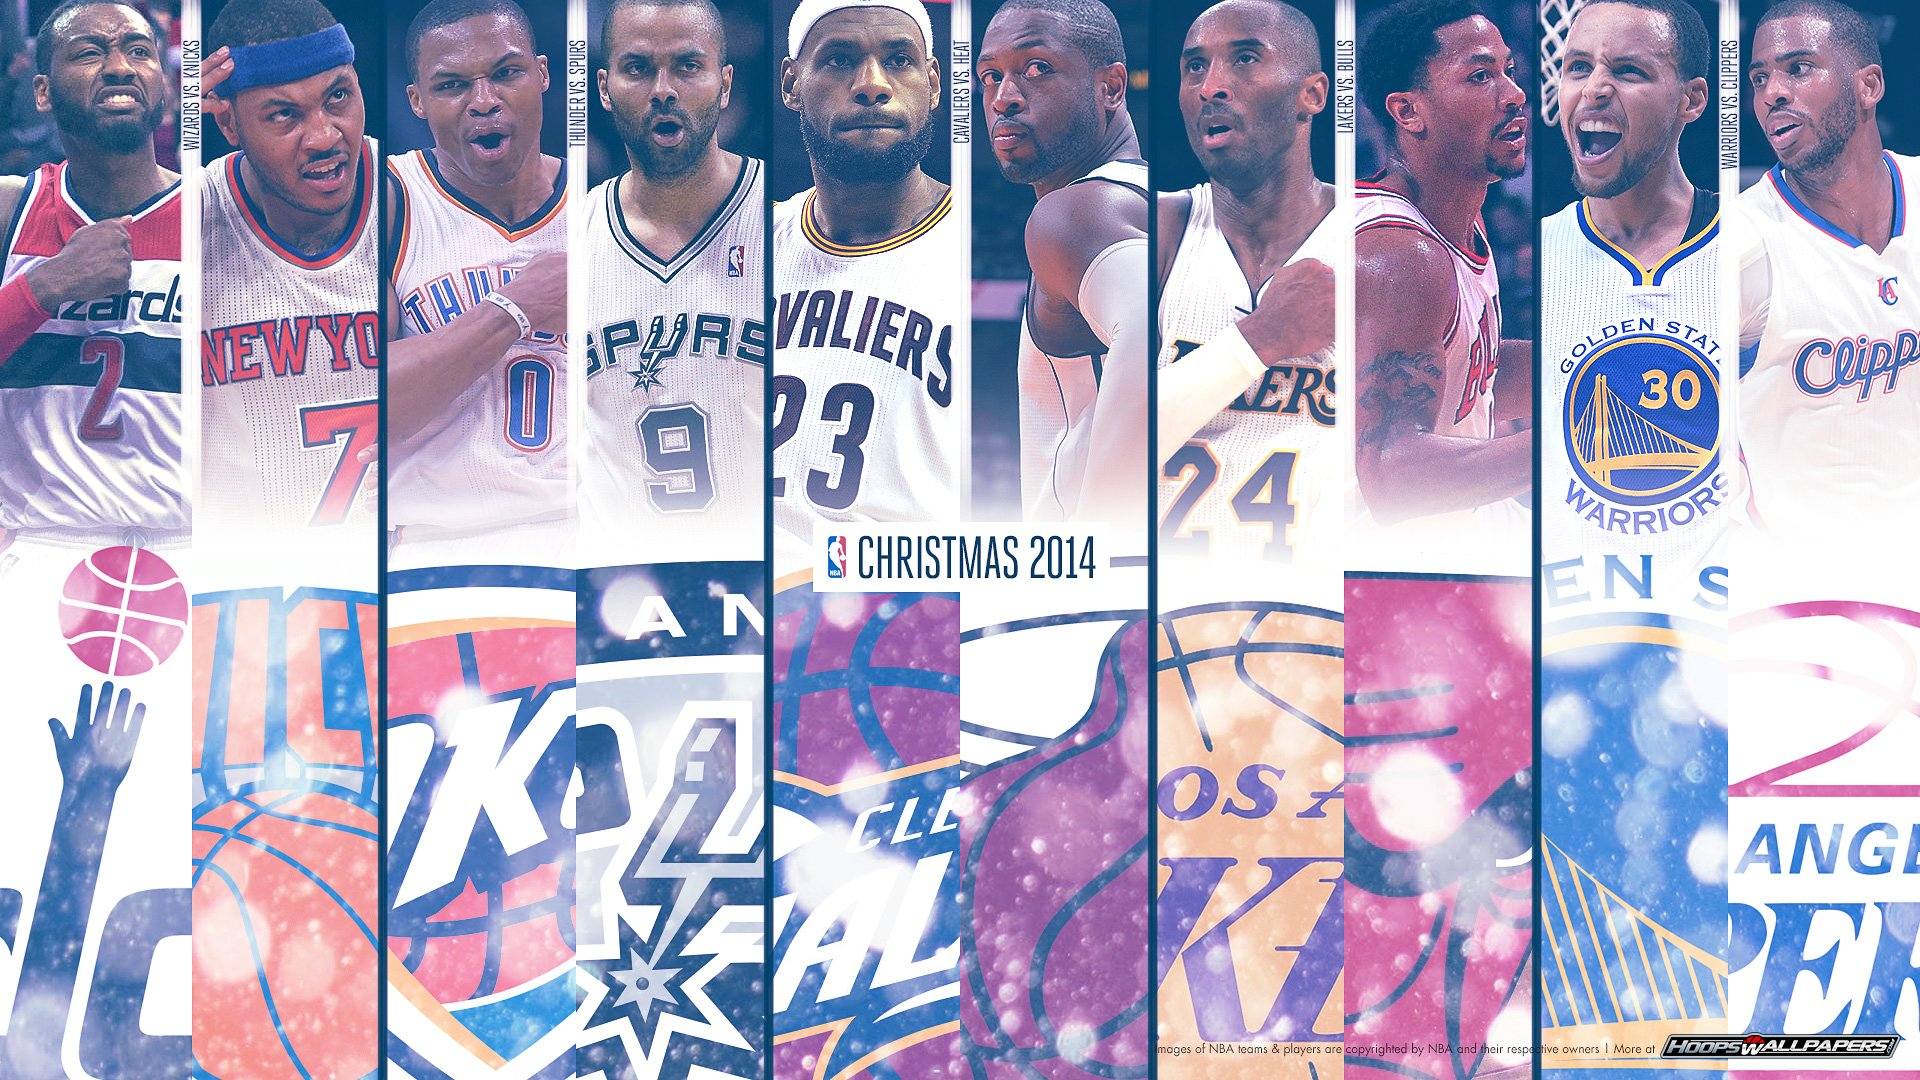 NBA wallpaper Click on the image for the full HD resolution wallpaper 1920x1080